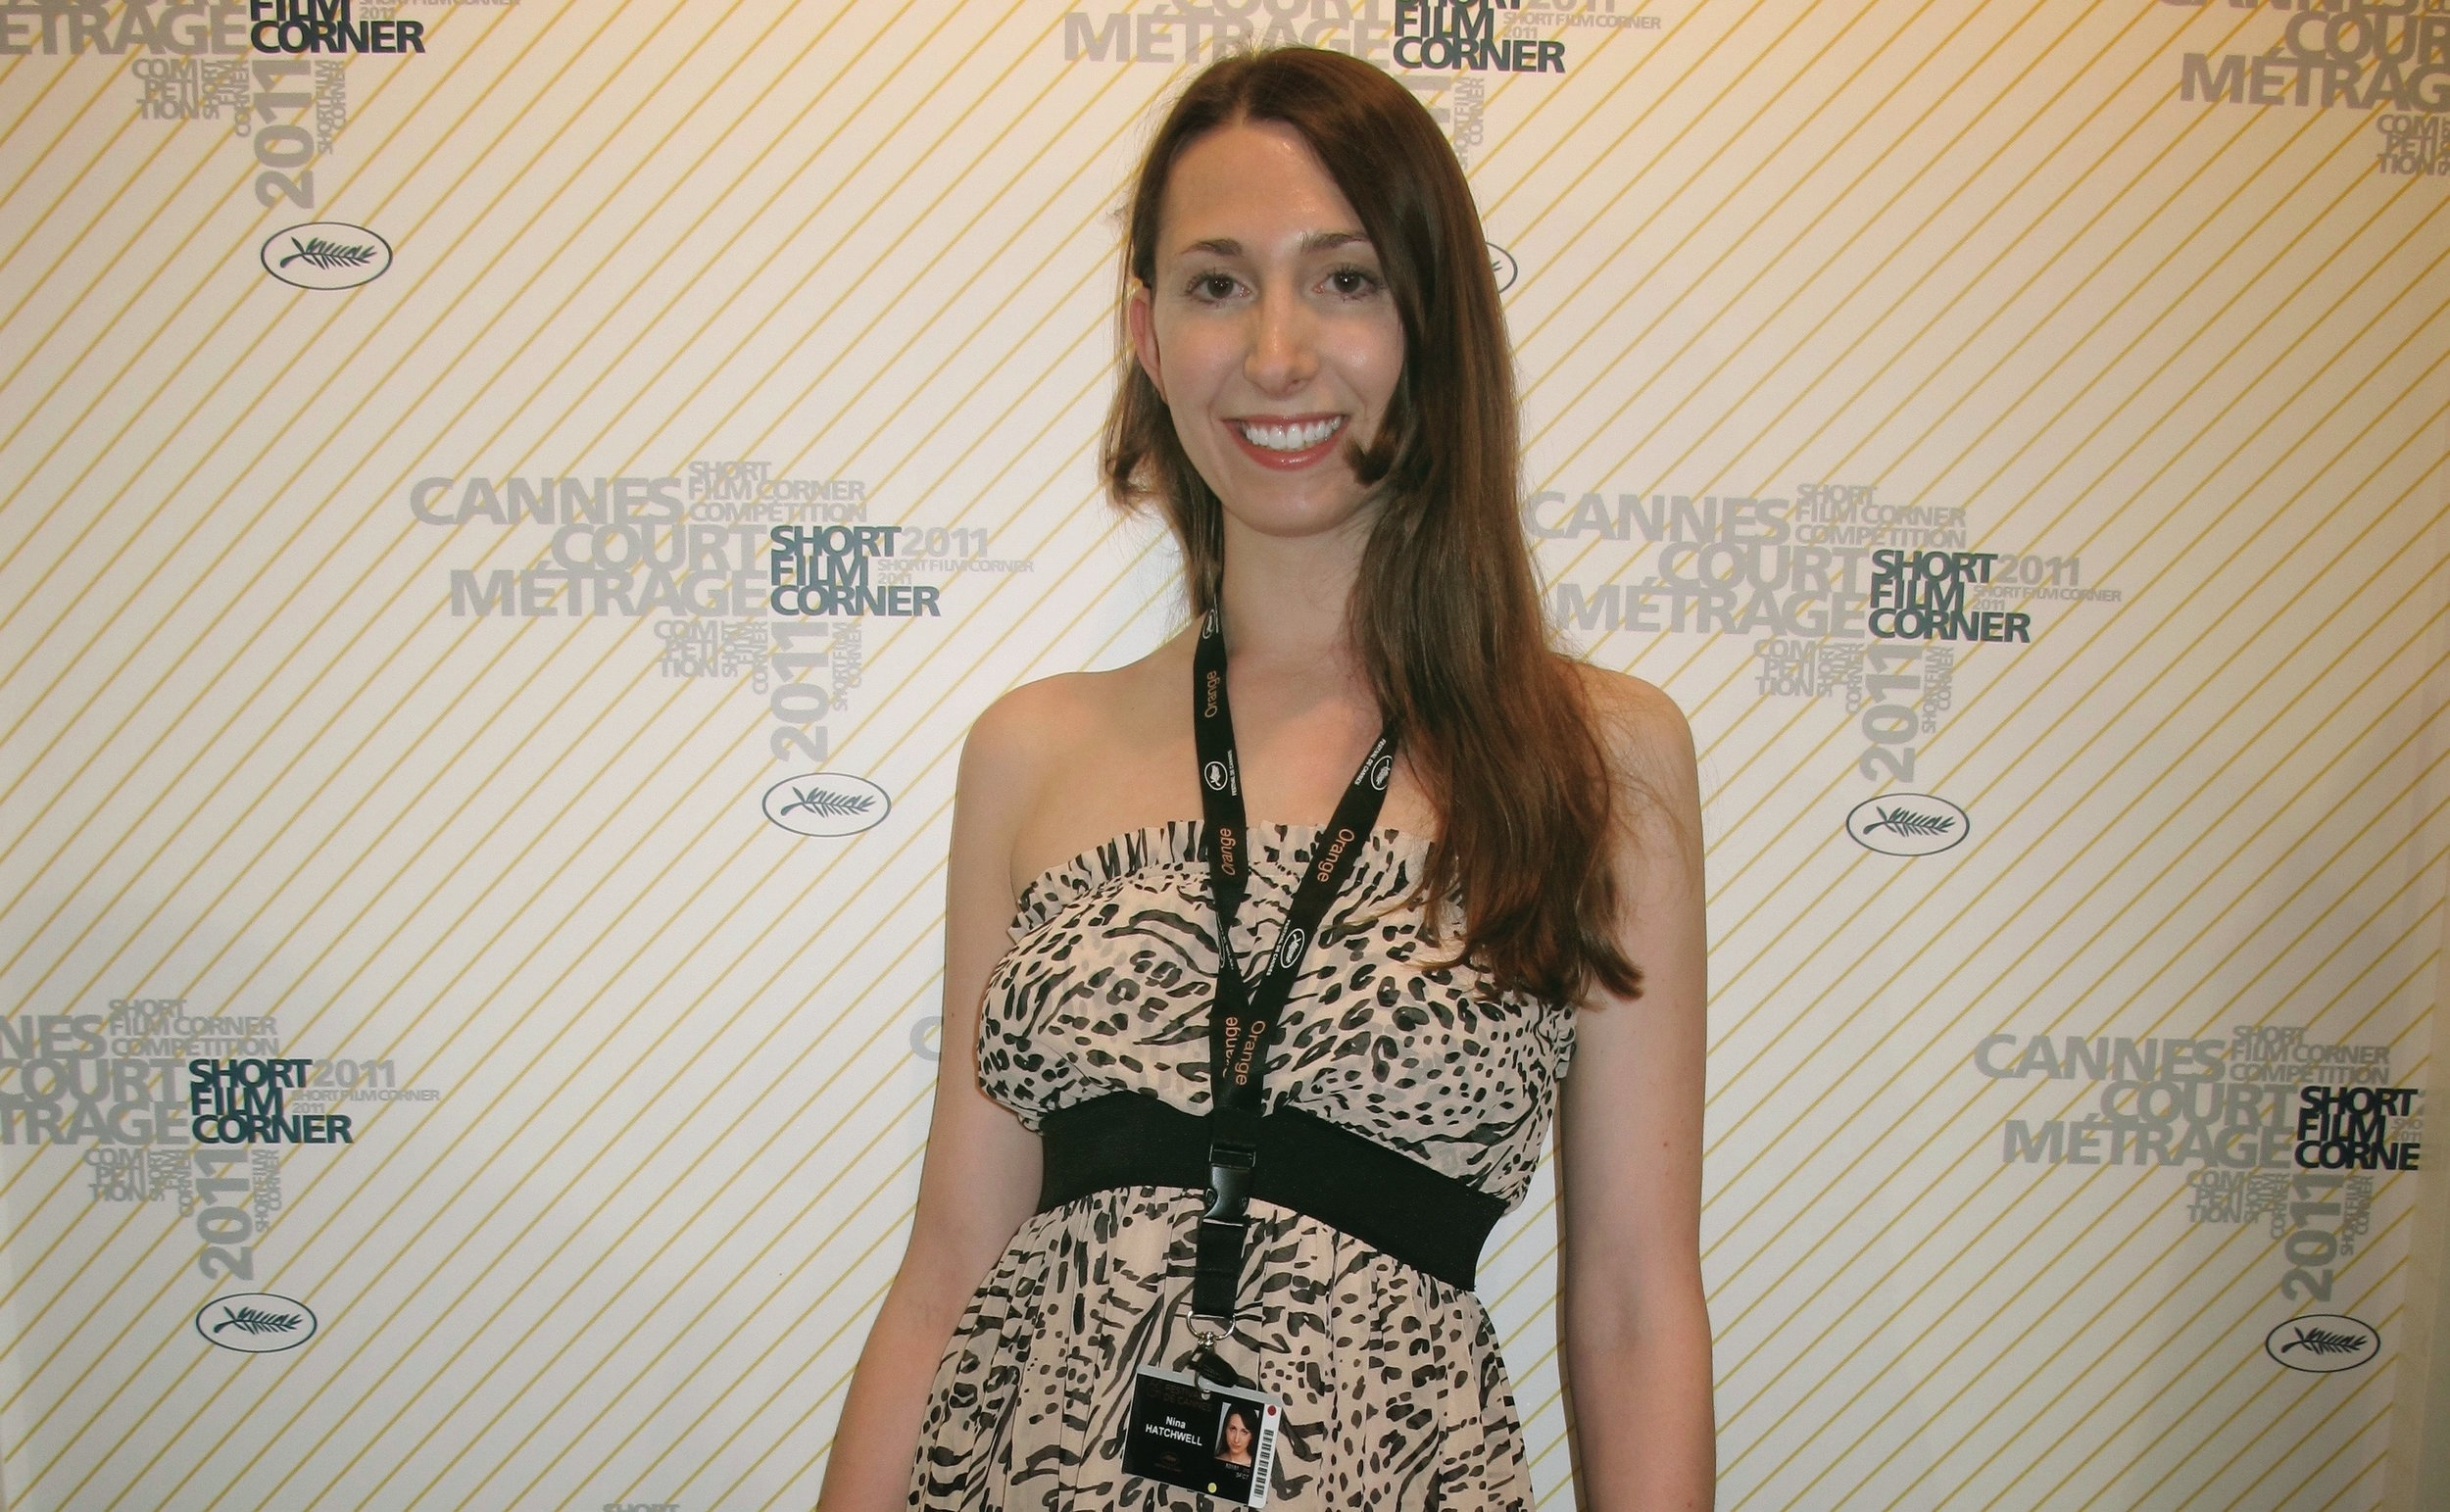 Huffington Post at Cannes Film Festival 2011 - Nina Hatchwell made her debute short film as writer/director You Look StunningWherein she plays the lead role Isabella.Ron Dicker gives her a mention in his article on How Young Film Makers Fund making films. Click here to leave site and go to article